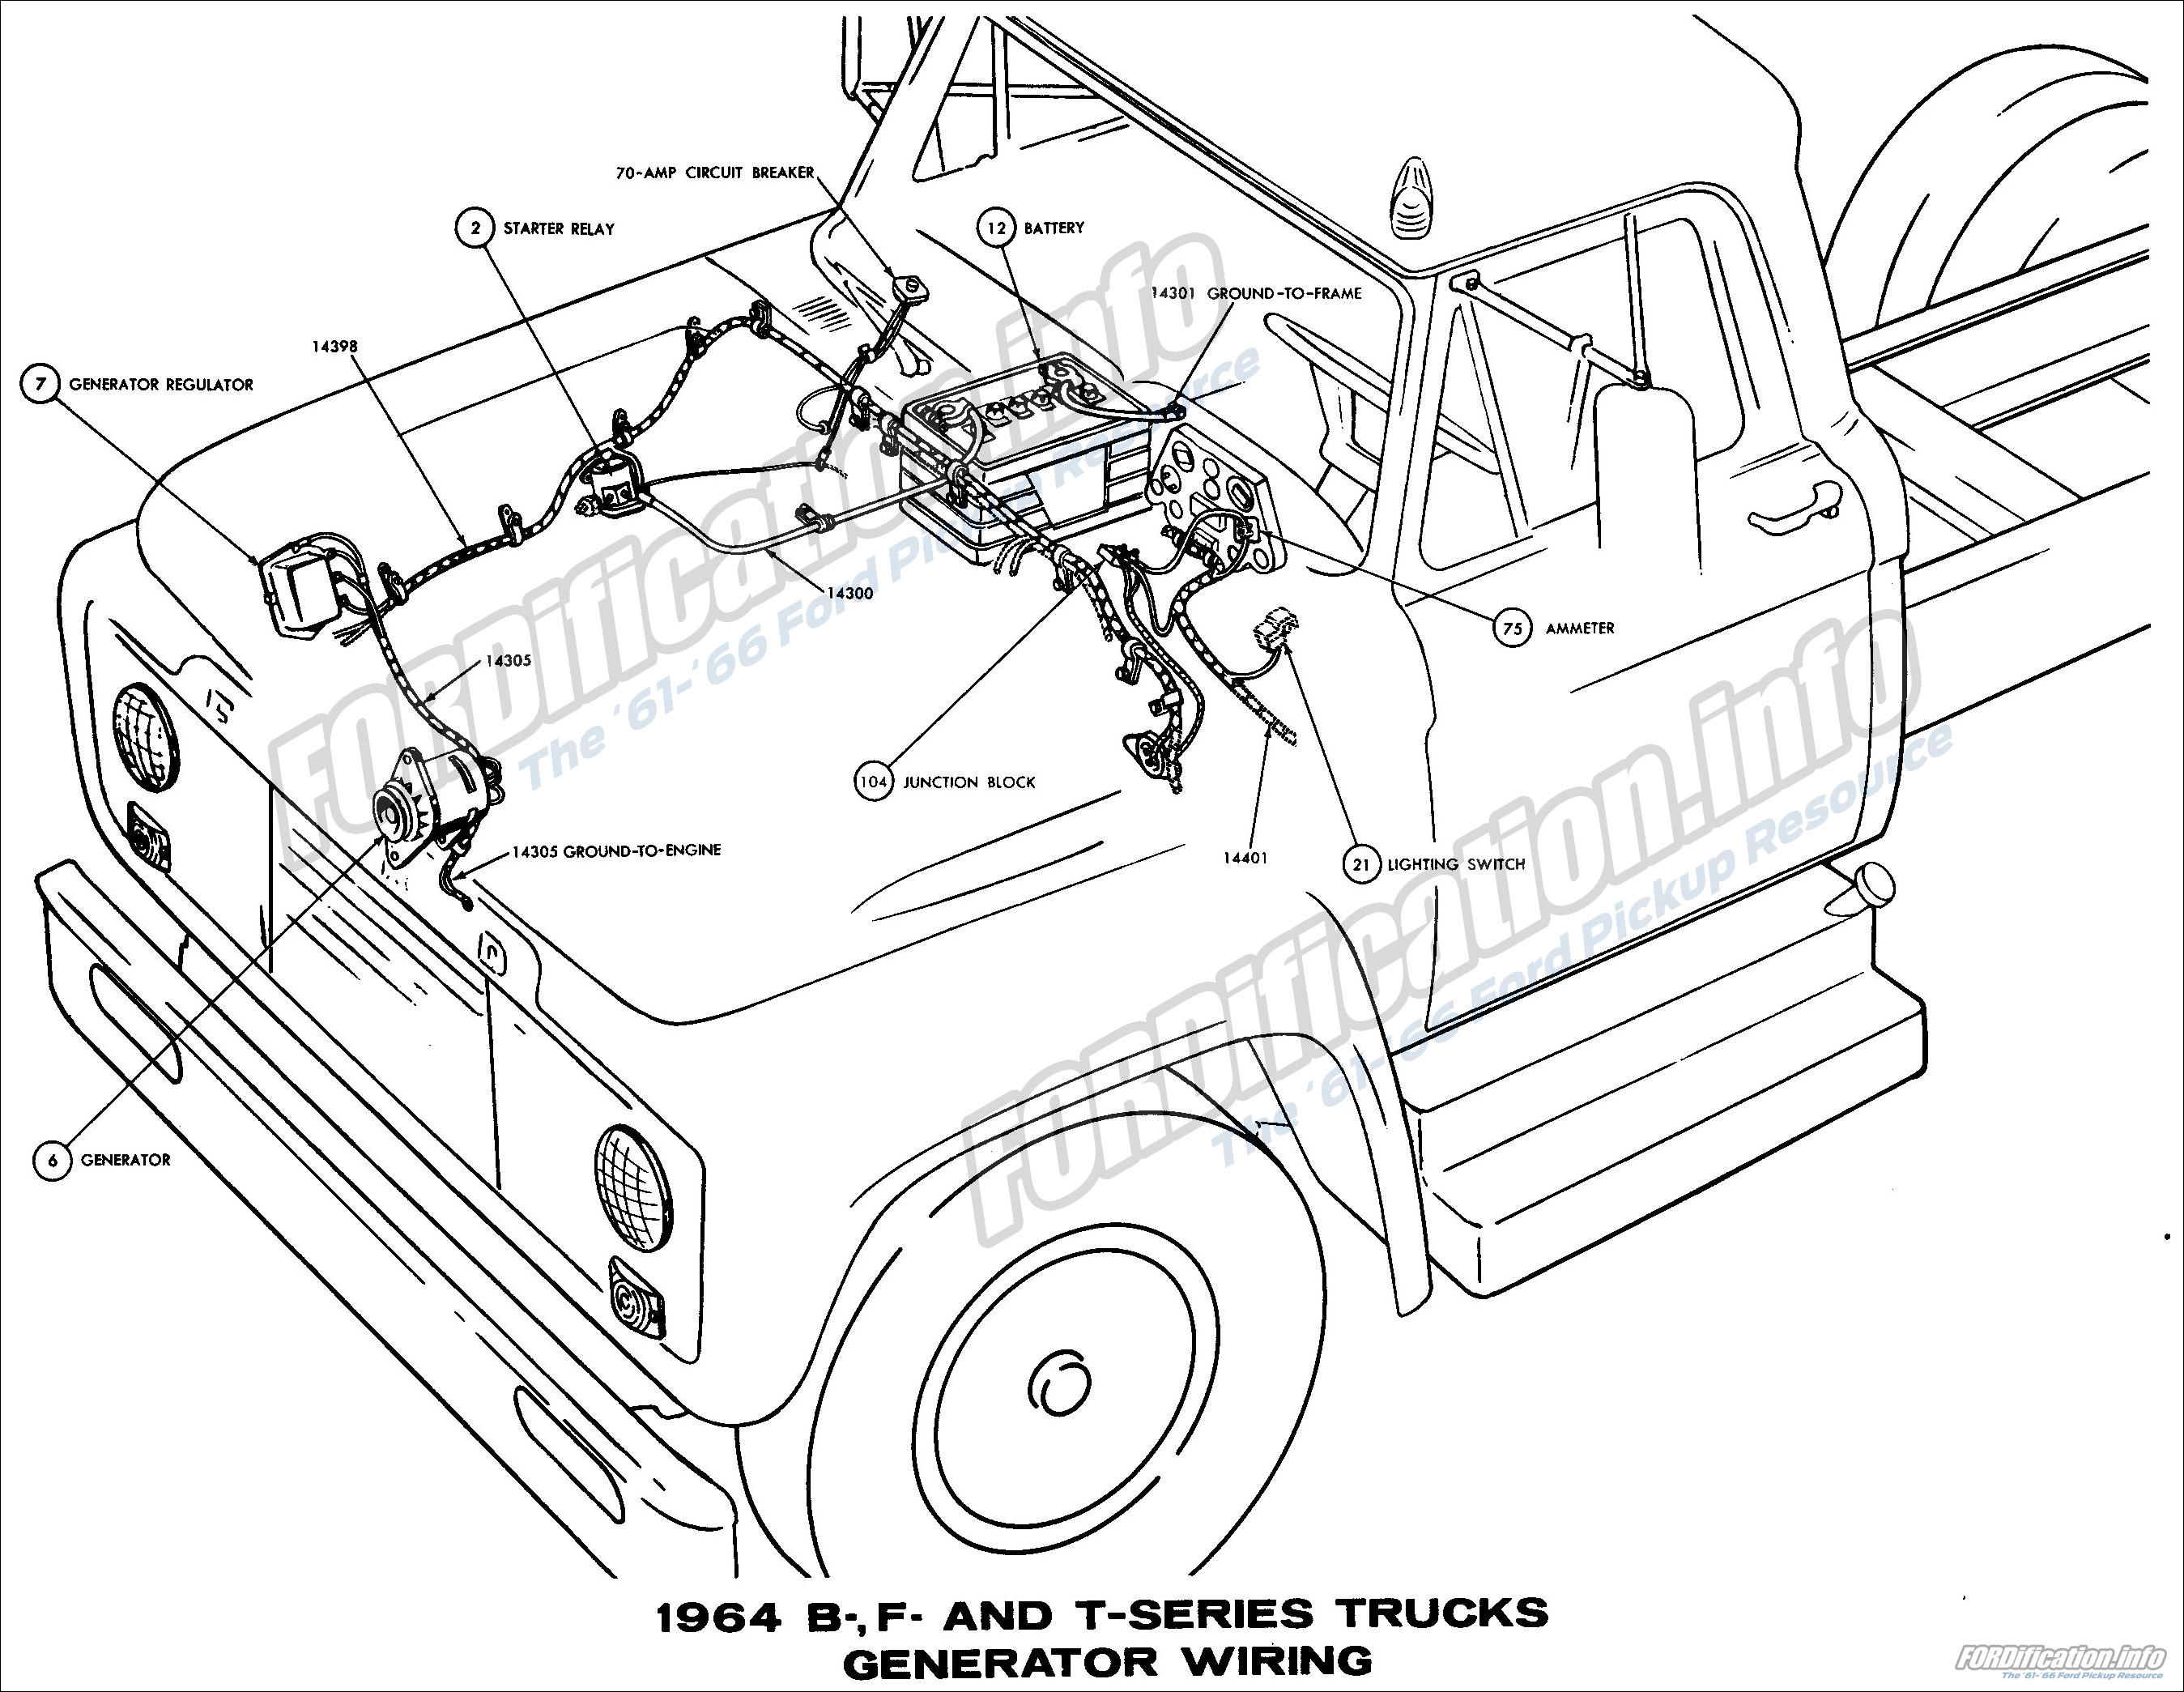 Ford Truck Generator Wiring Diagram List Of Schematic Circuit 1948 1964 Diagrams Fordification Info The 61 66 Rh